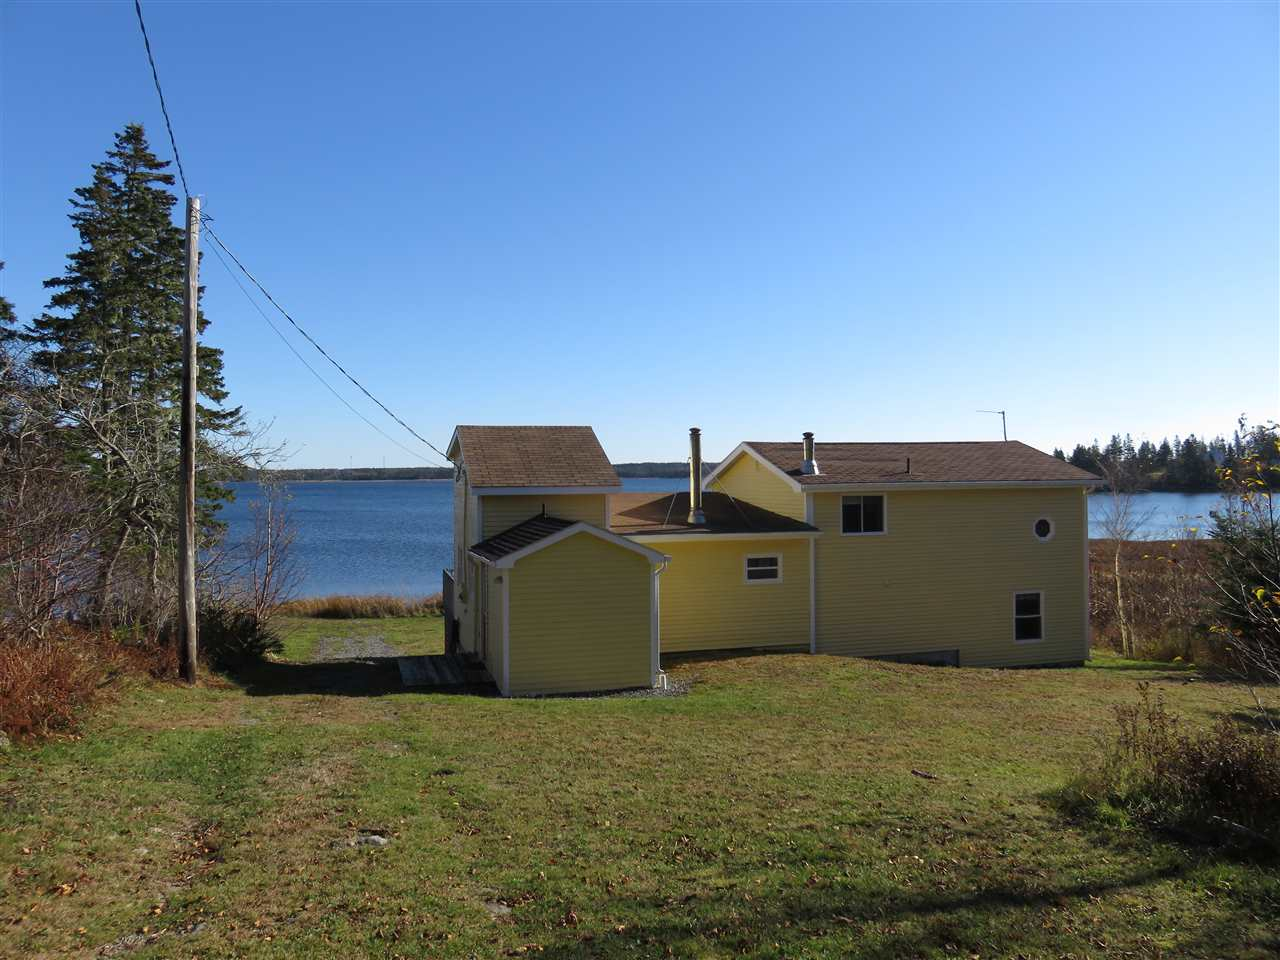 Photo 4: Photos: 783 WEST GREEN HARBOUR Road in West Green Harbour: 407-Shelburne County Residential for sale (South Shore)  : MLS® # 201701314